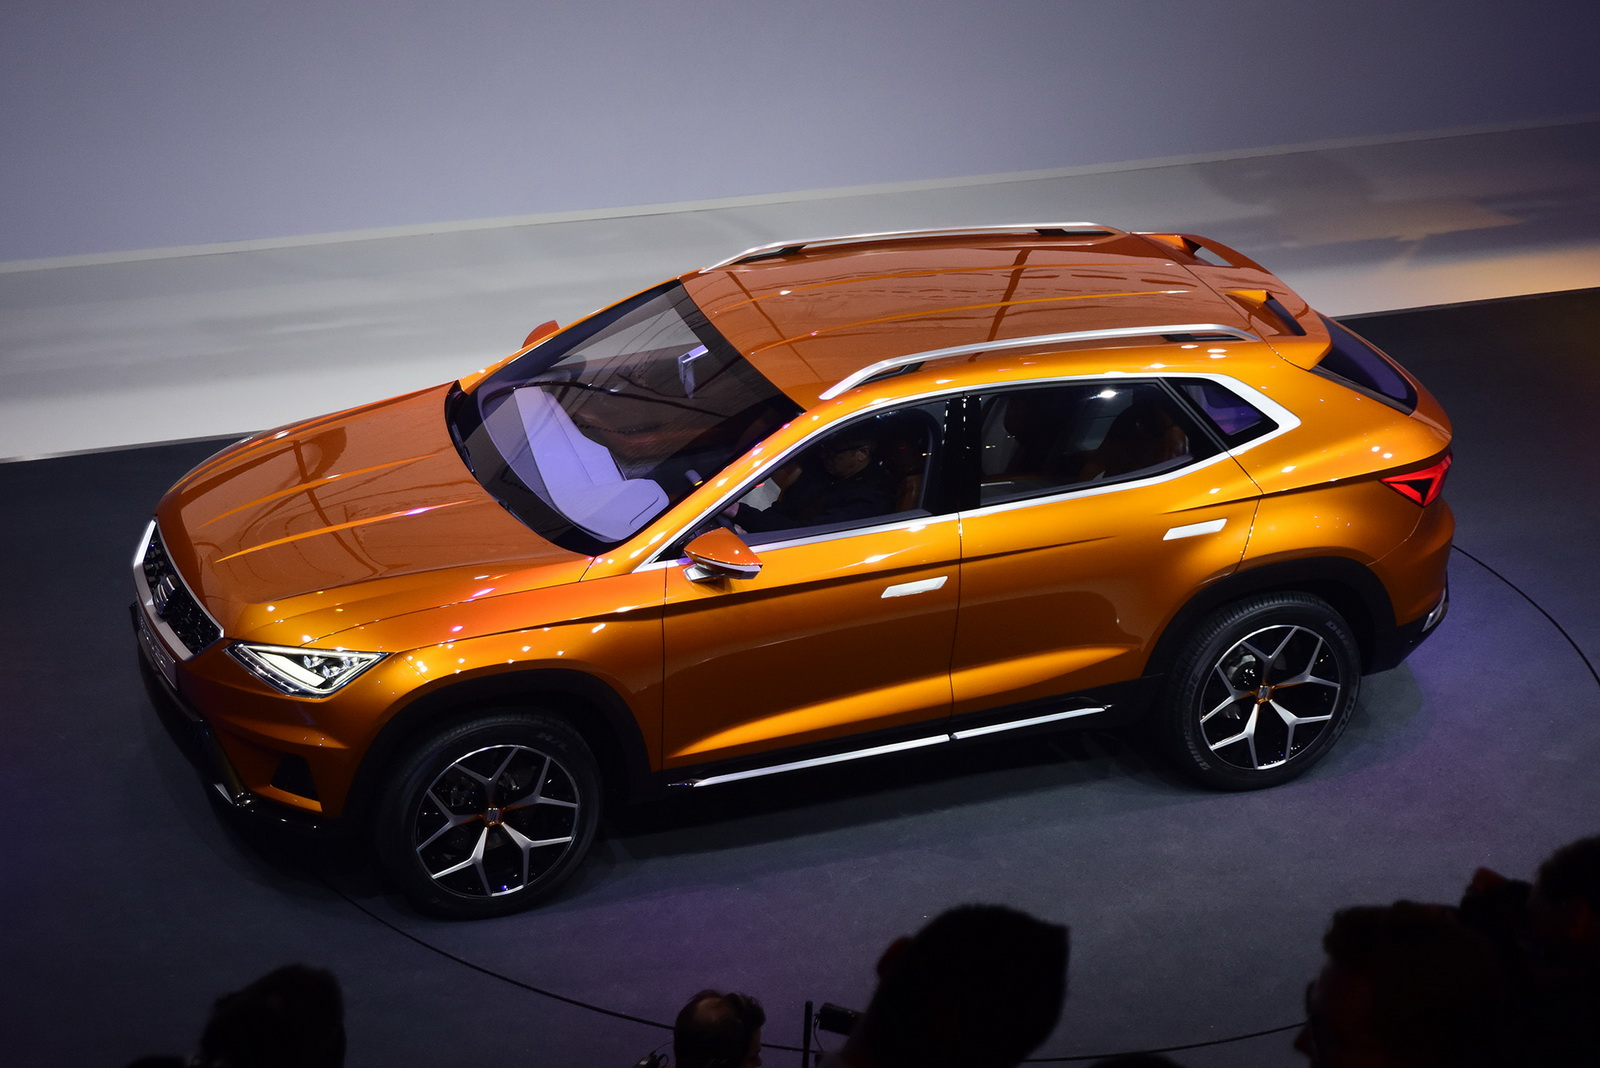 seat plans revealed four new models by 2018 suv coming in 2016 carscoops. Black Bedroom Furniture Sets. Home Design Ideas